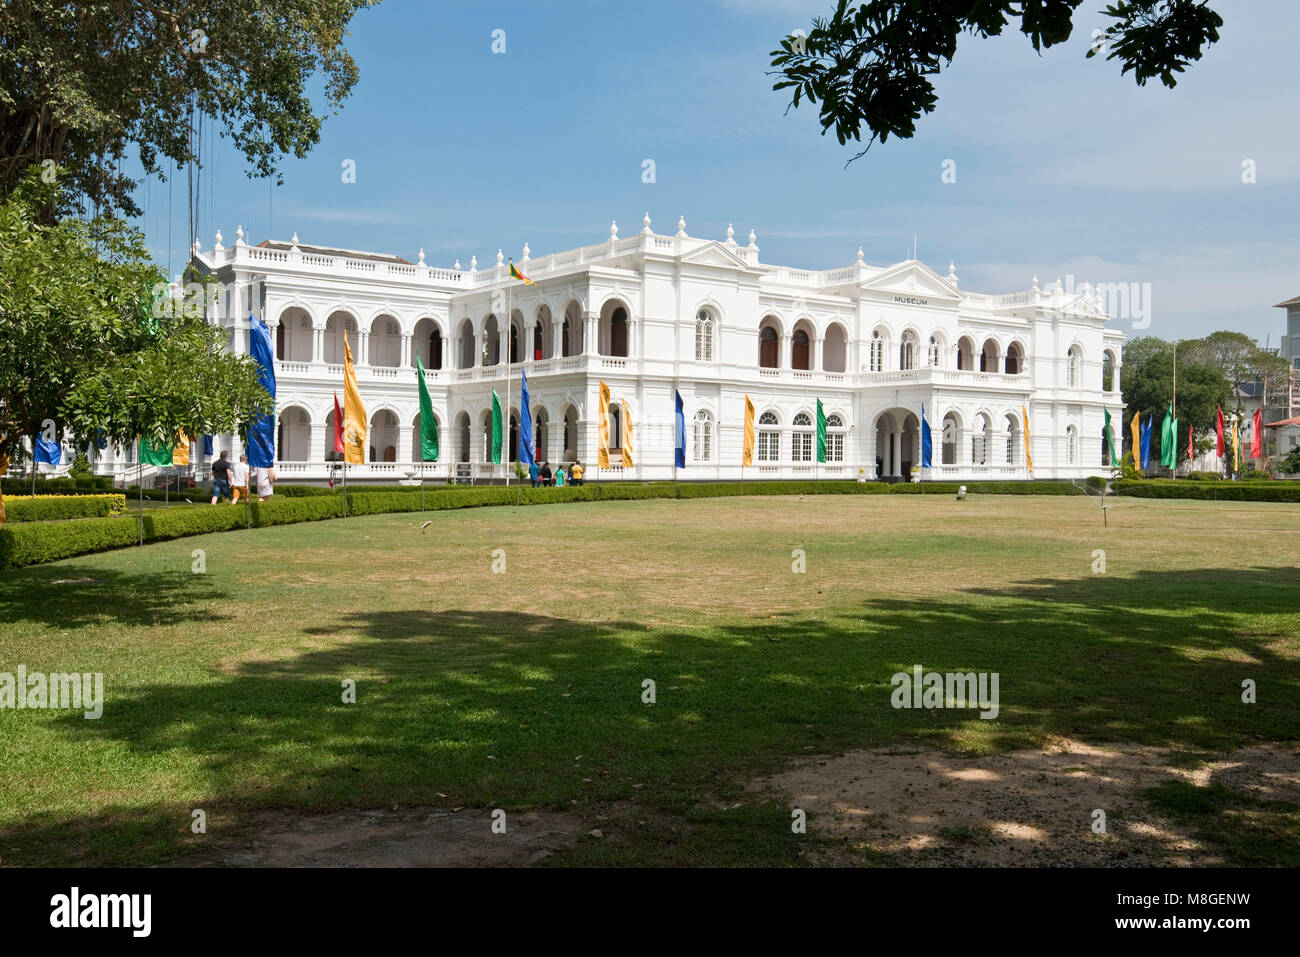 The National Museum of Colombo aka Sri Lanka National Museum exterior on a sunny day with blue sky. Stock Photo